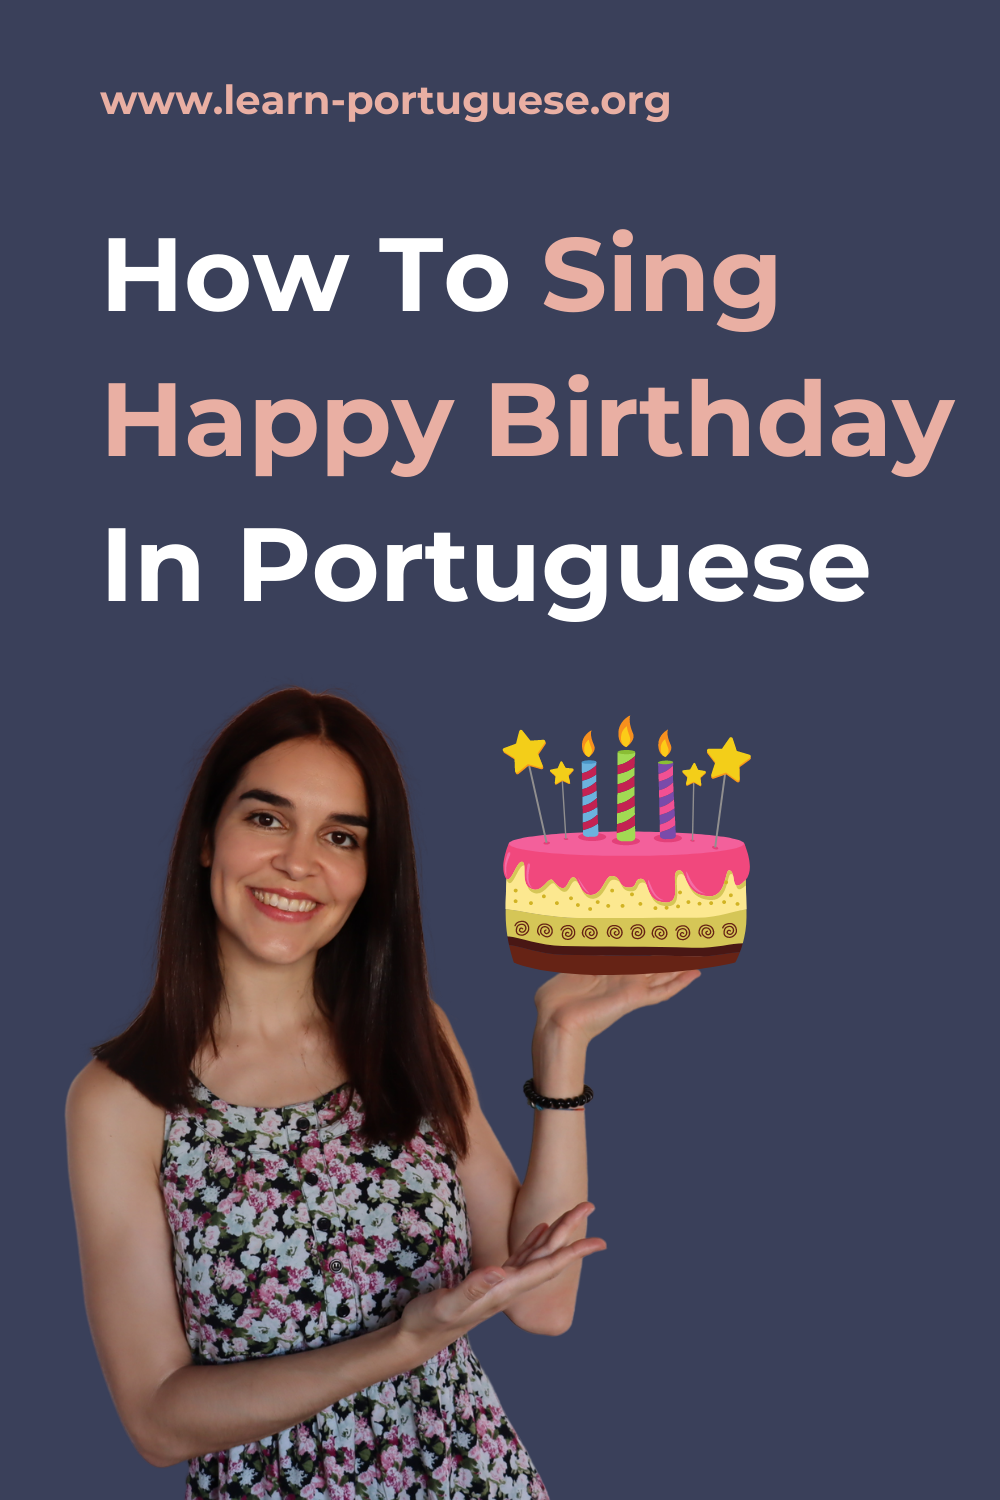 How To Sing Happy Birthday In Portuguese Singing Happy Birthday Birthday Songs Happy Birthday Song